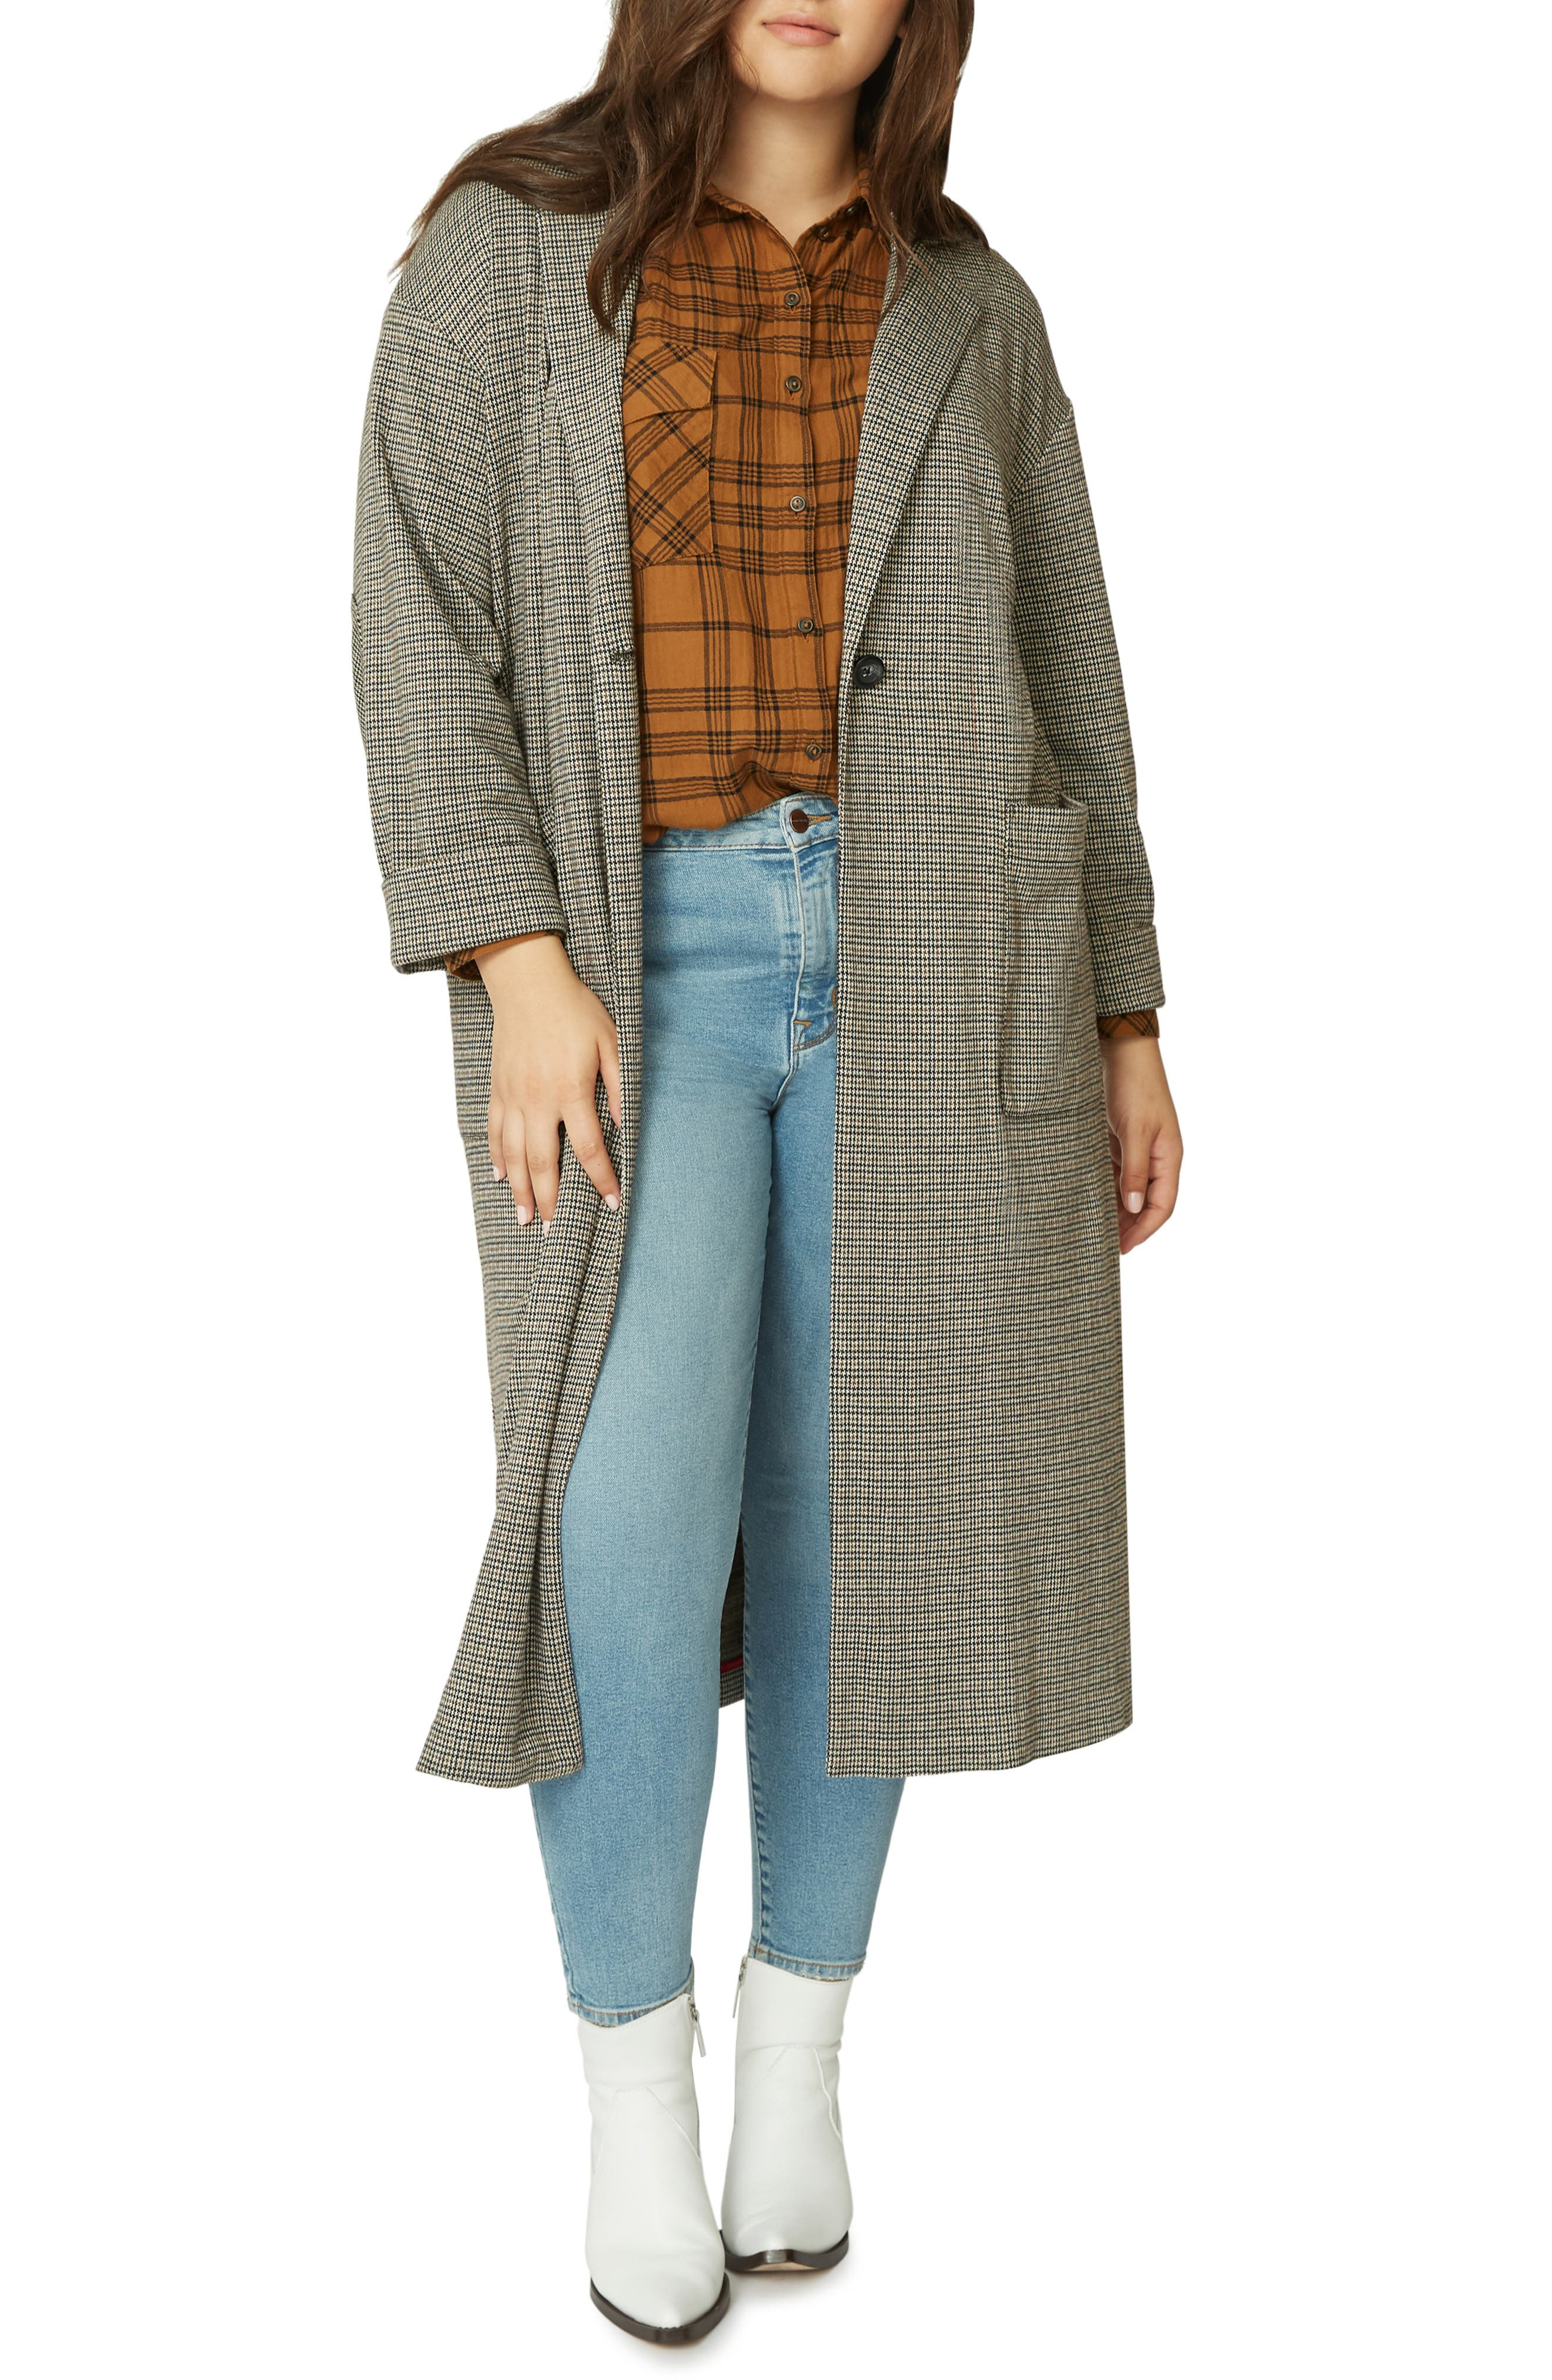 Bespoke Plaid Duster Jacket,                         Main,                         color, KNT HND CK